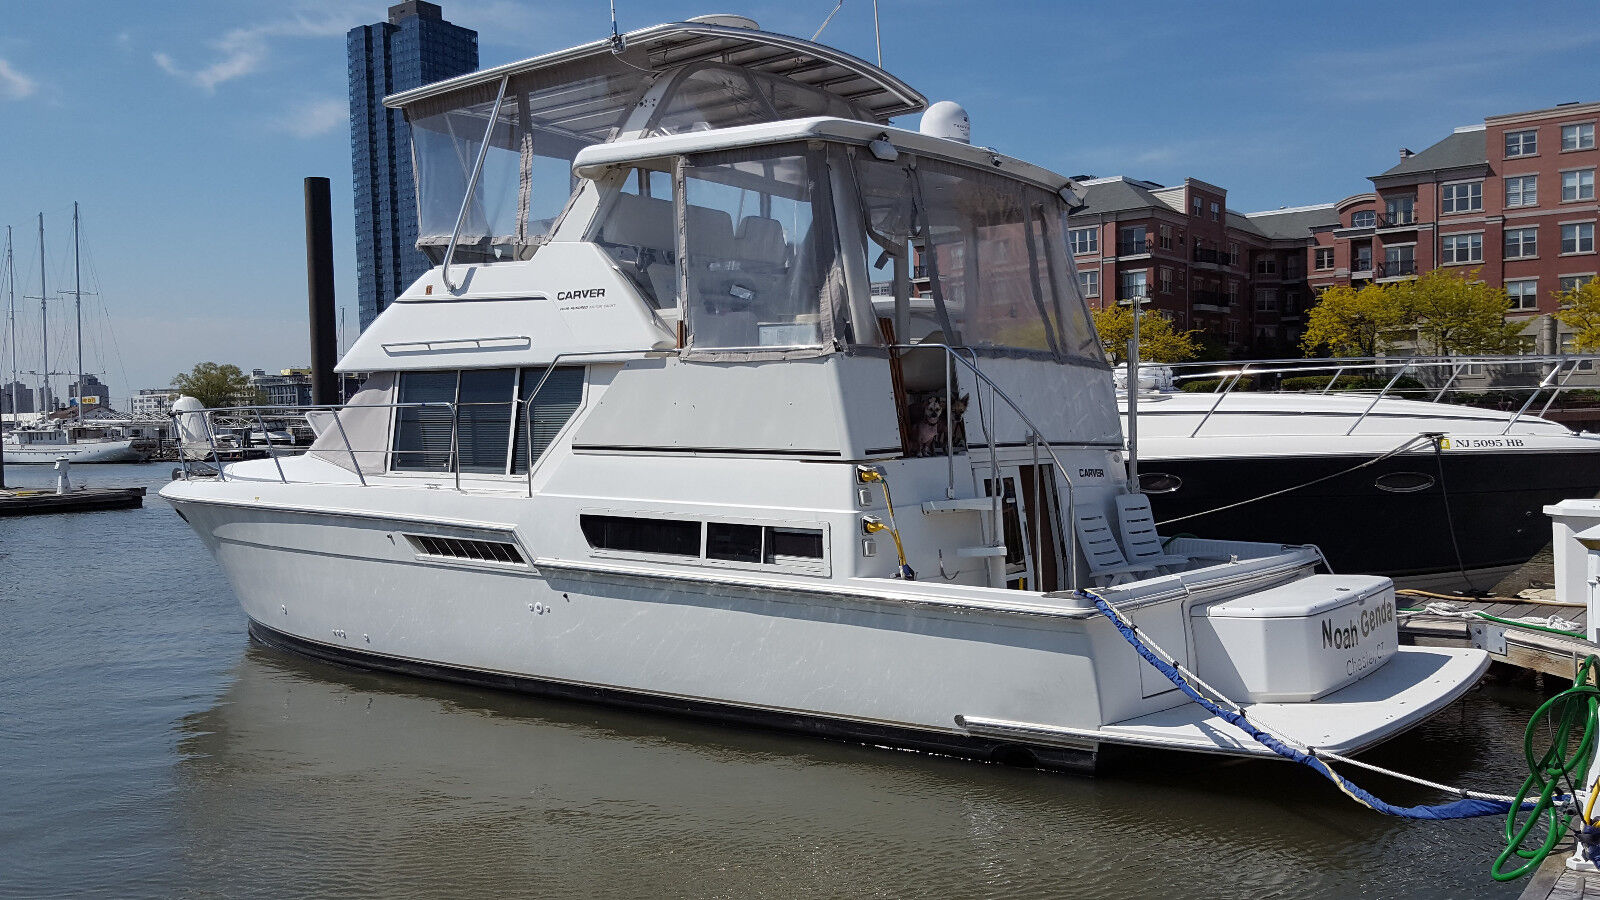 Carver 400 Cockpit Motor Yacht 1997, 42 ft., Twin Cummins Diesel Engines